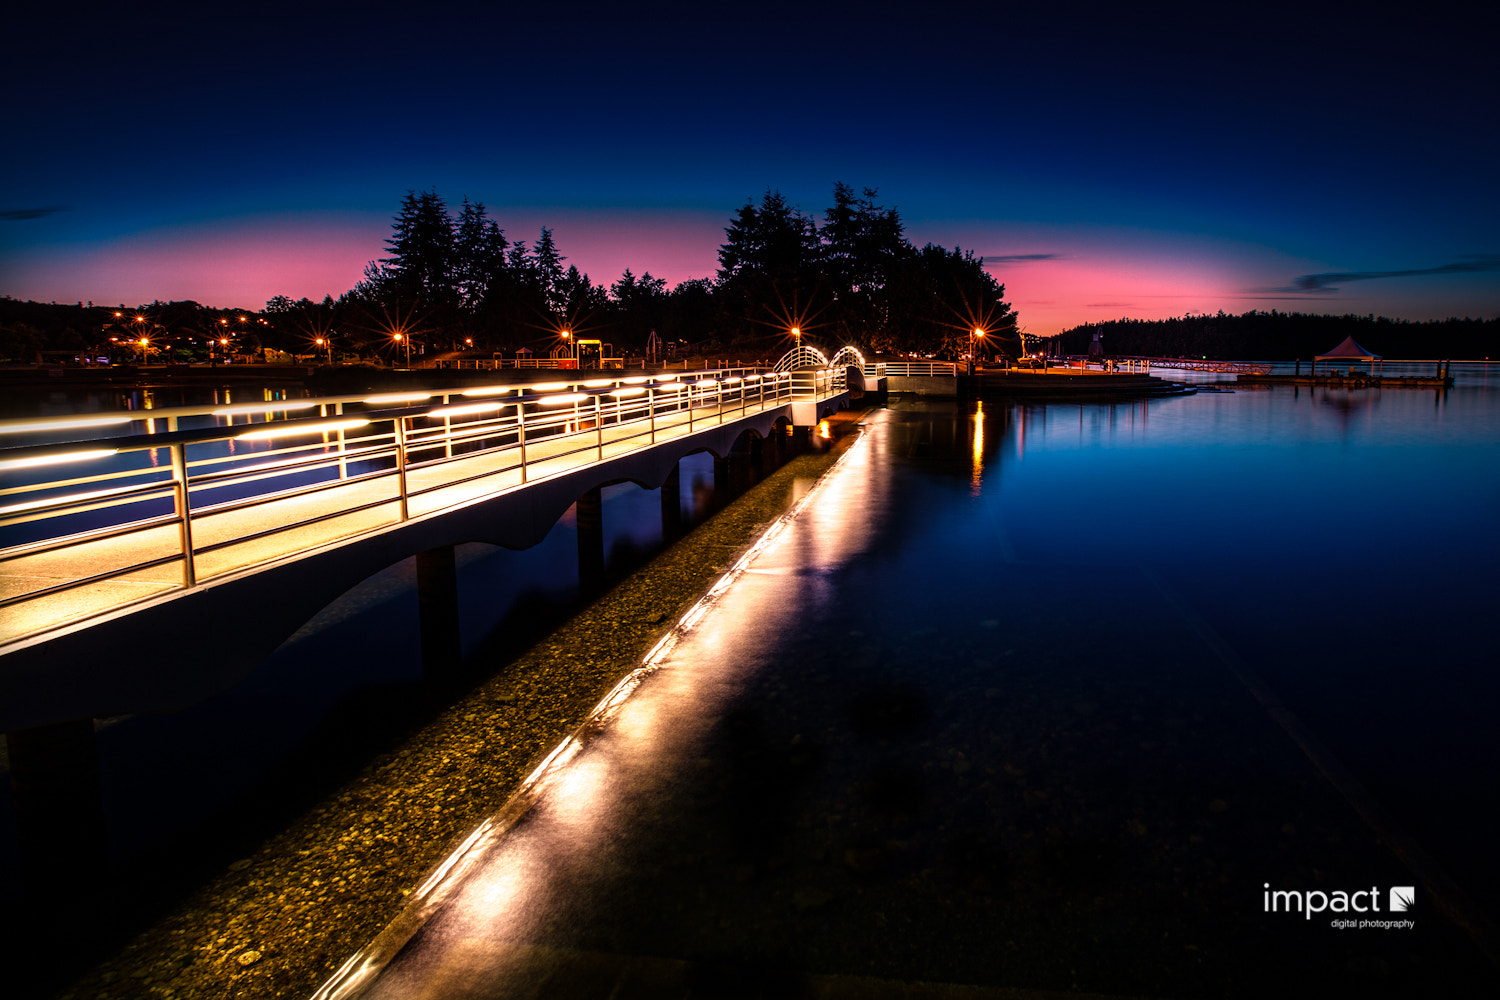 Photograph The Bridge at the Lagoon by Mike Thompson on 500px